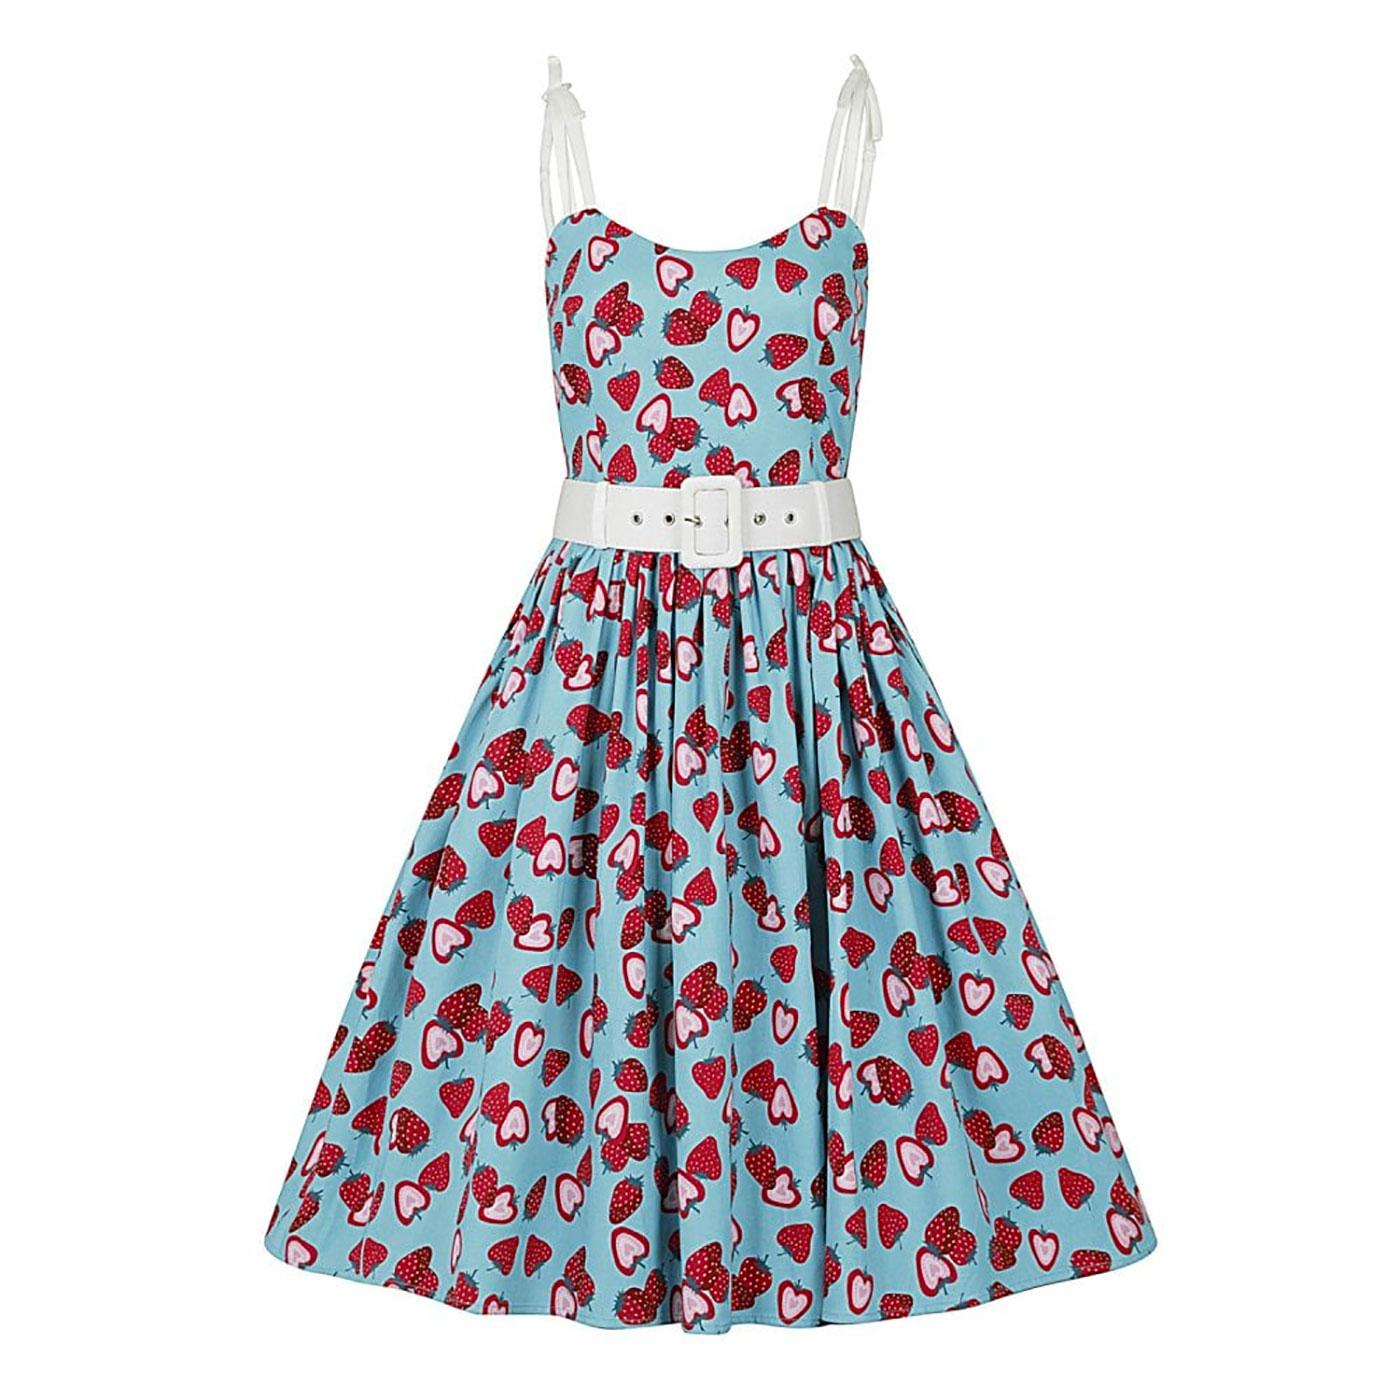 Jade COLLECTIF Vintage 50s Strawberry Swing Dress